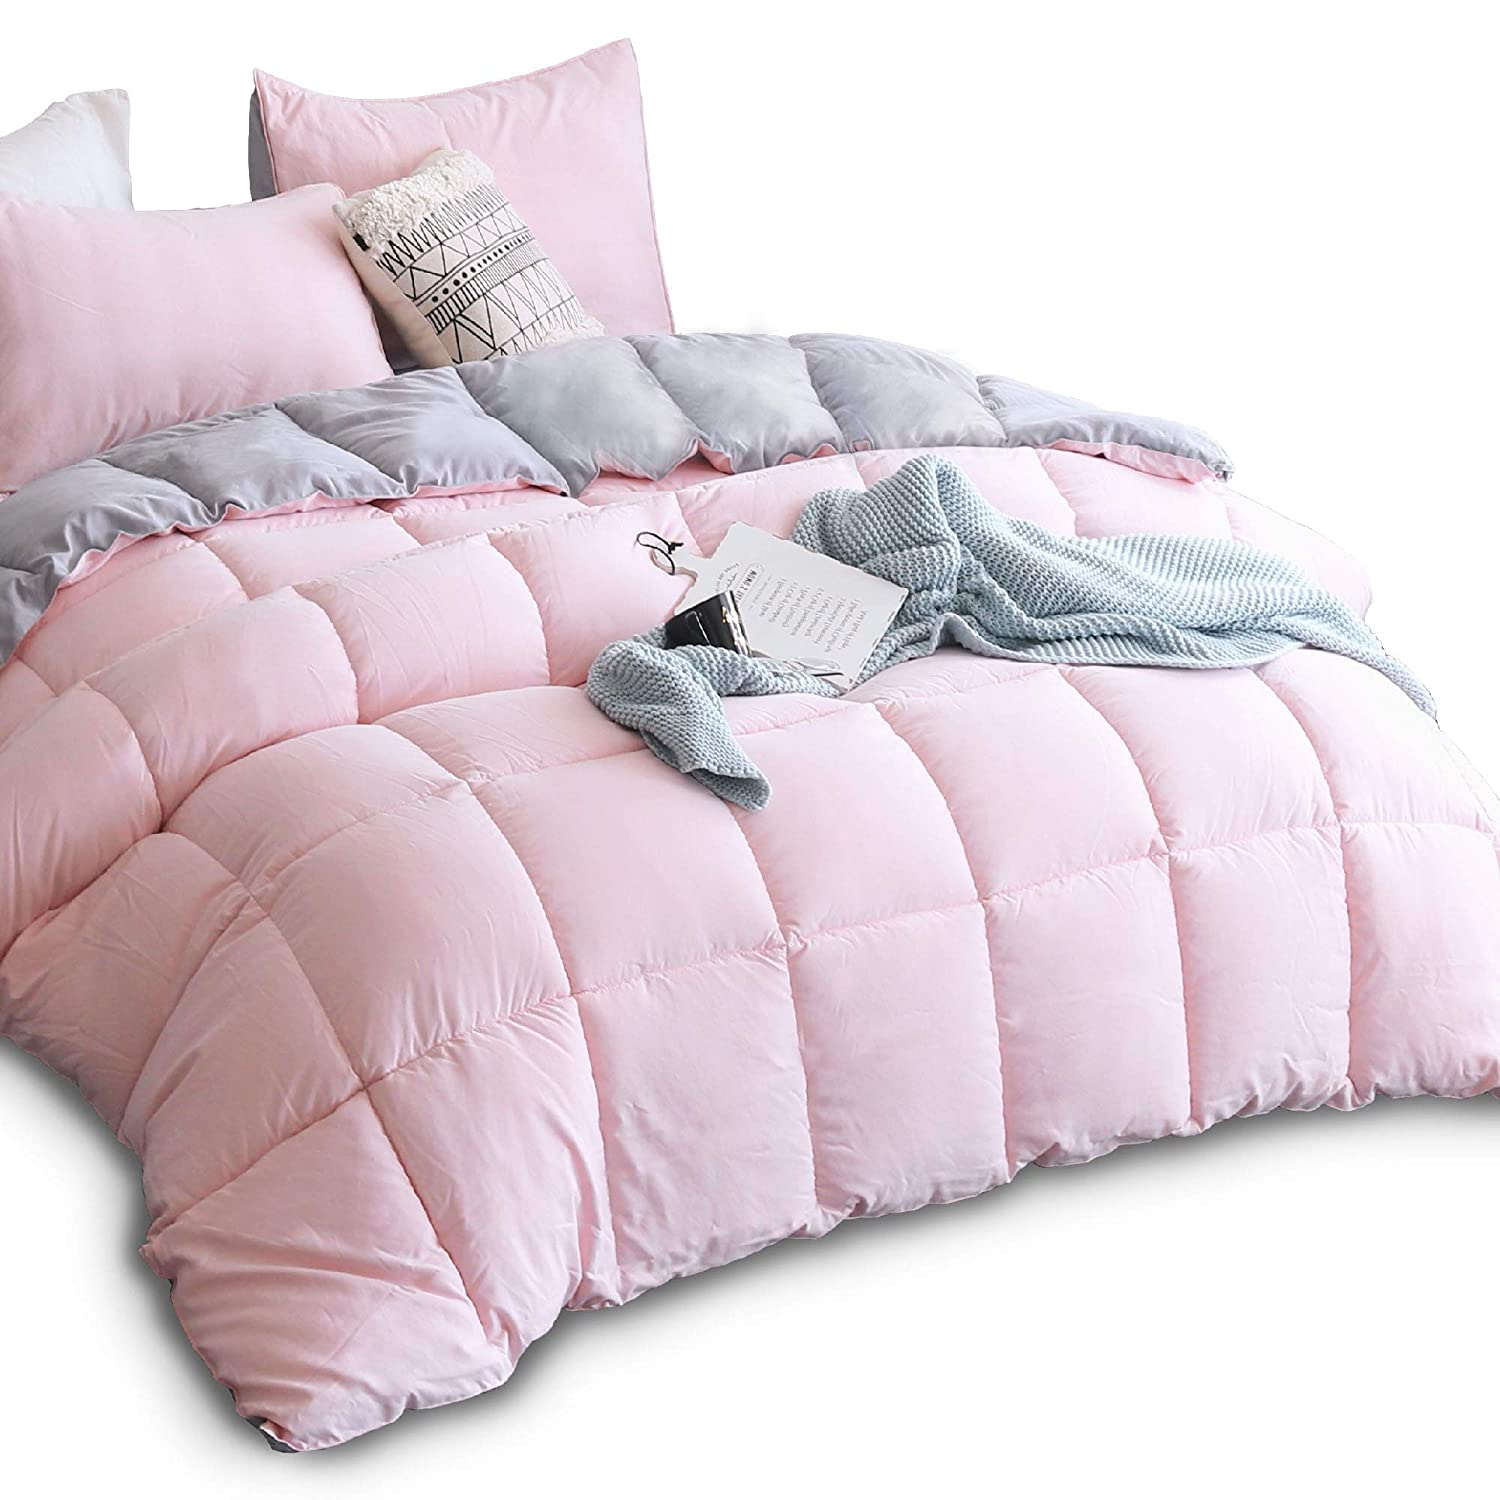 KASENTEX All Season Down Alternative Quilted Comforter Set with Sham(s) -Reversible Ultra Soft Duvet Insert Hypoallergenic Machine Washable, Twin, Pink Potpourri/Quartz Silver